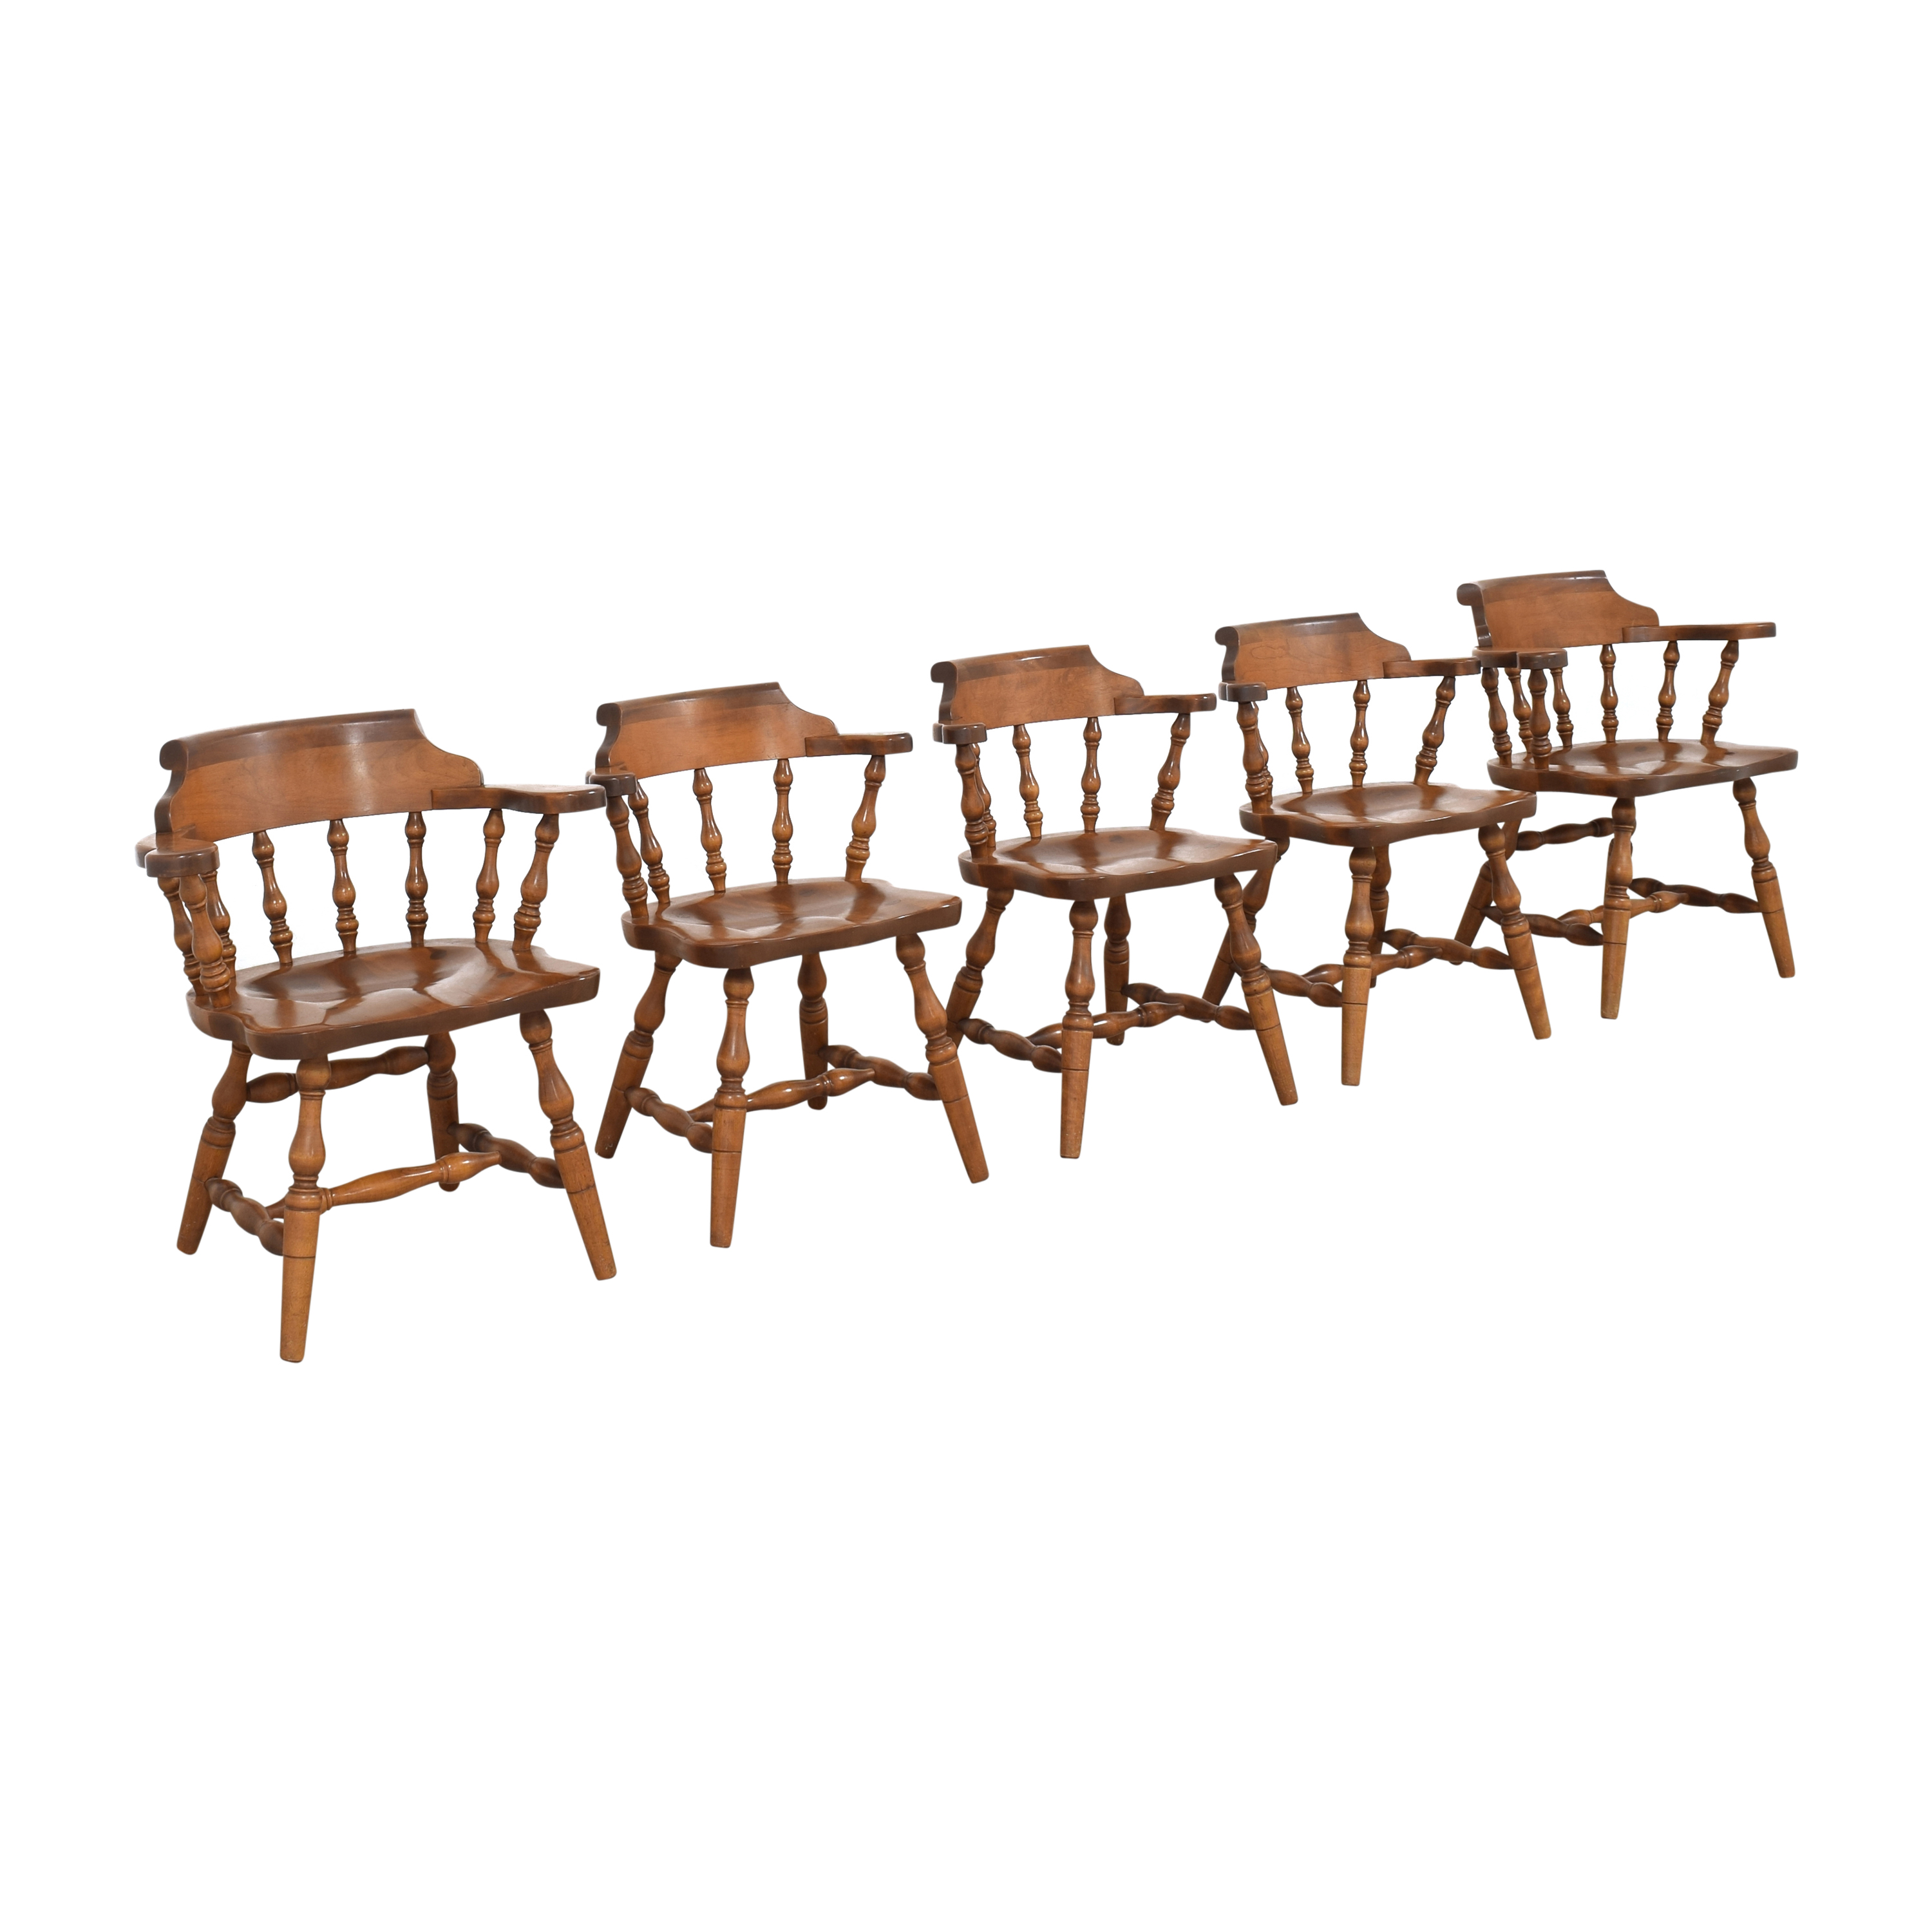 S. Bent & Bros S. Bent & Bros Colonial Windsor Captain's Chairs Chairs